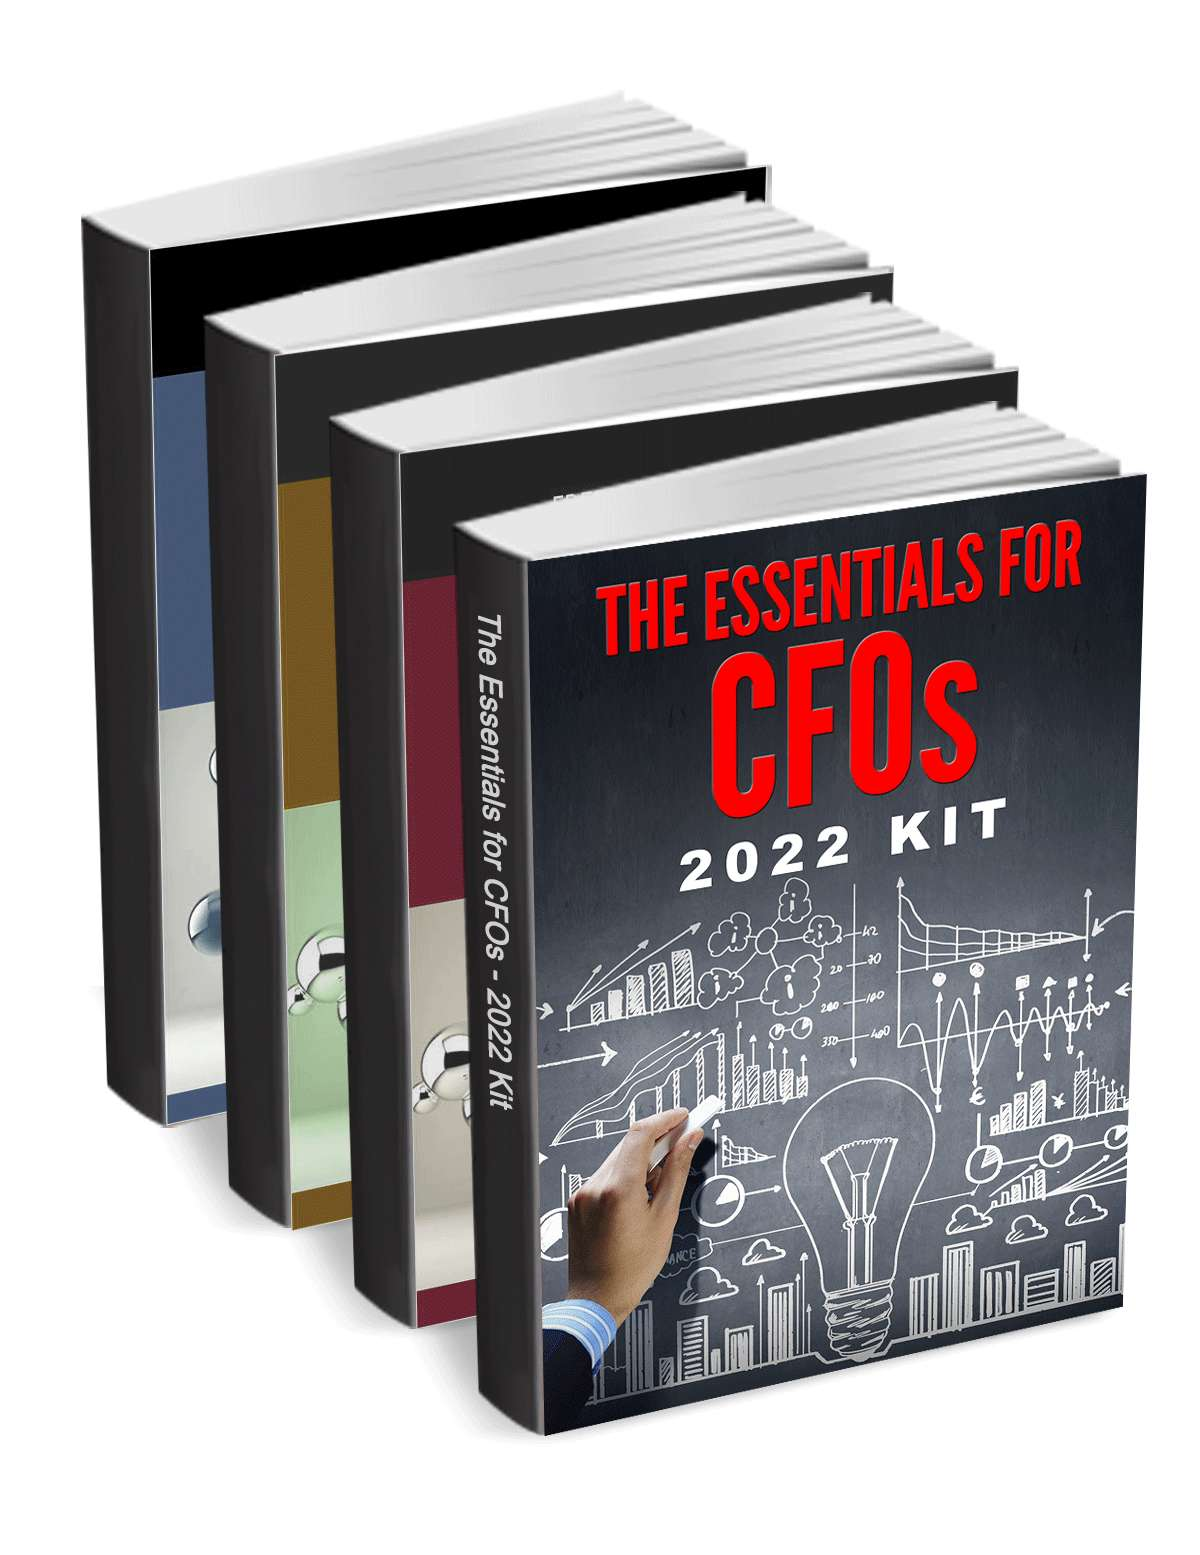 The Essentials for CFOs - July 2017 Kit